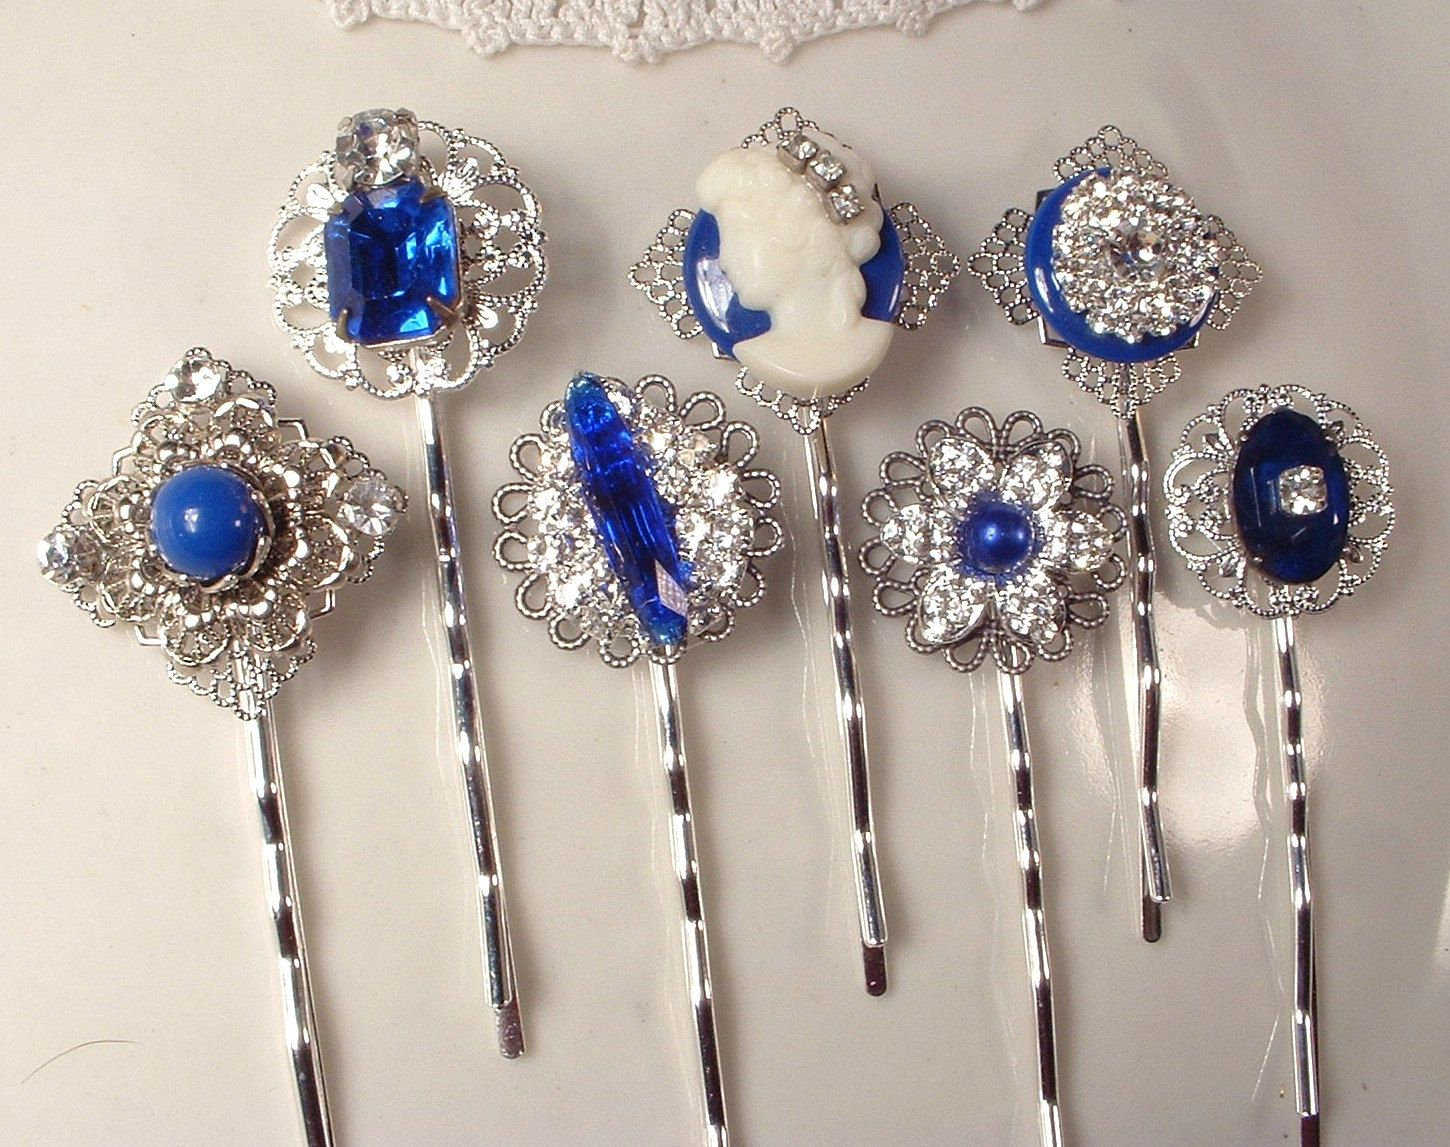 Long Bobby Pin Rhinestone Crystal Hair Clip Hairpin Jeweled Simple Elegant Blue